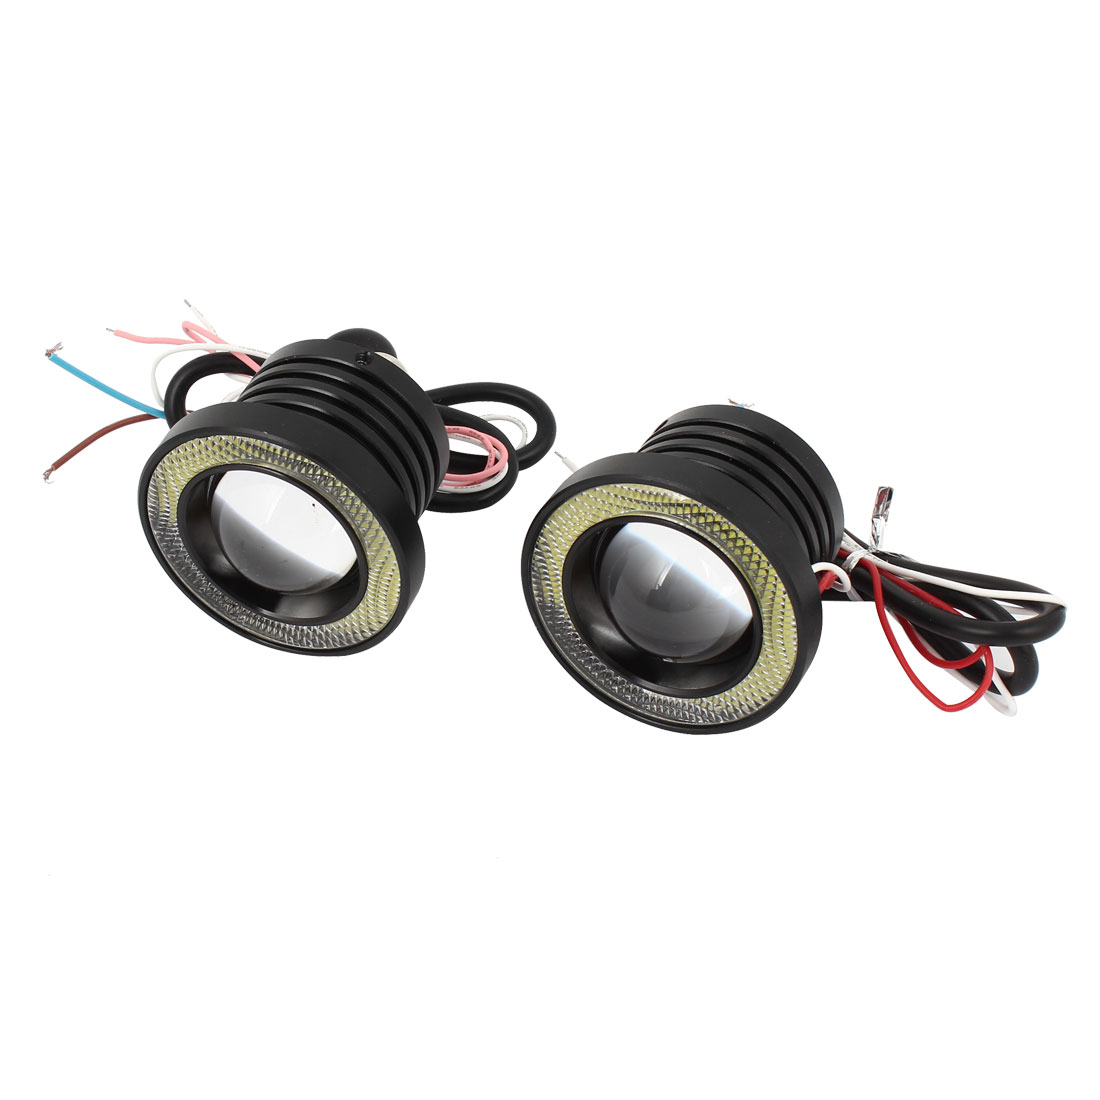 2 Pcs White Angel Eyes Light Lamp Foglight COB Cup 30W 64mm Dia for Auto Car